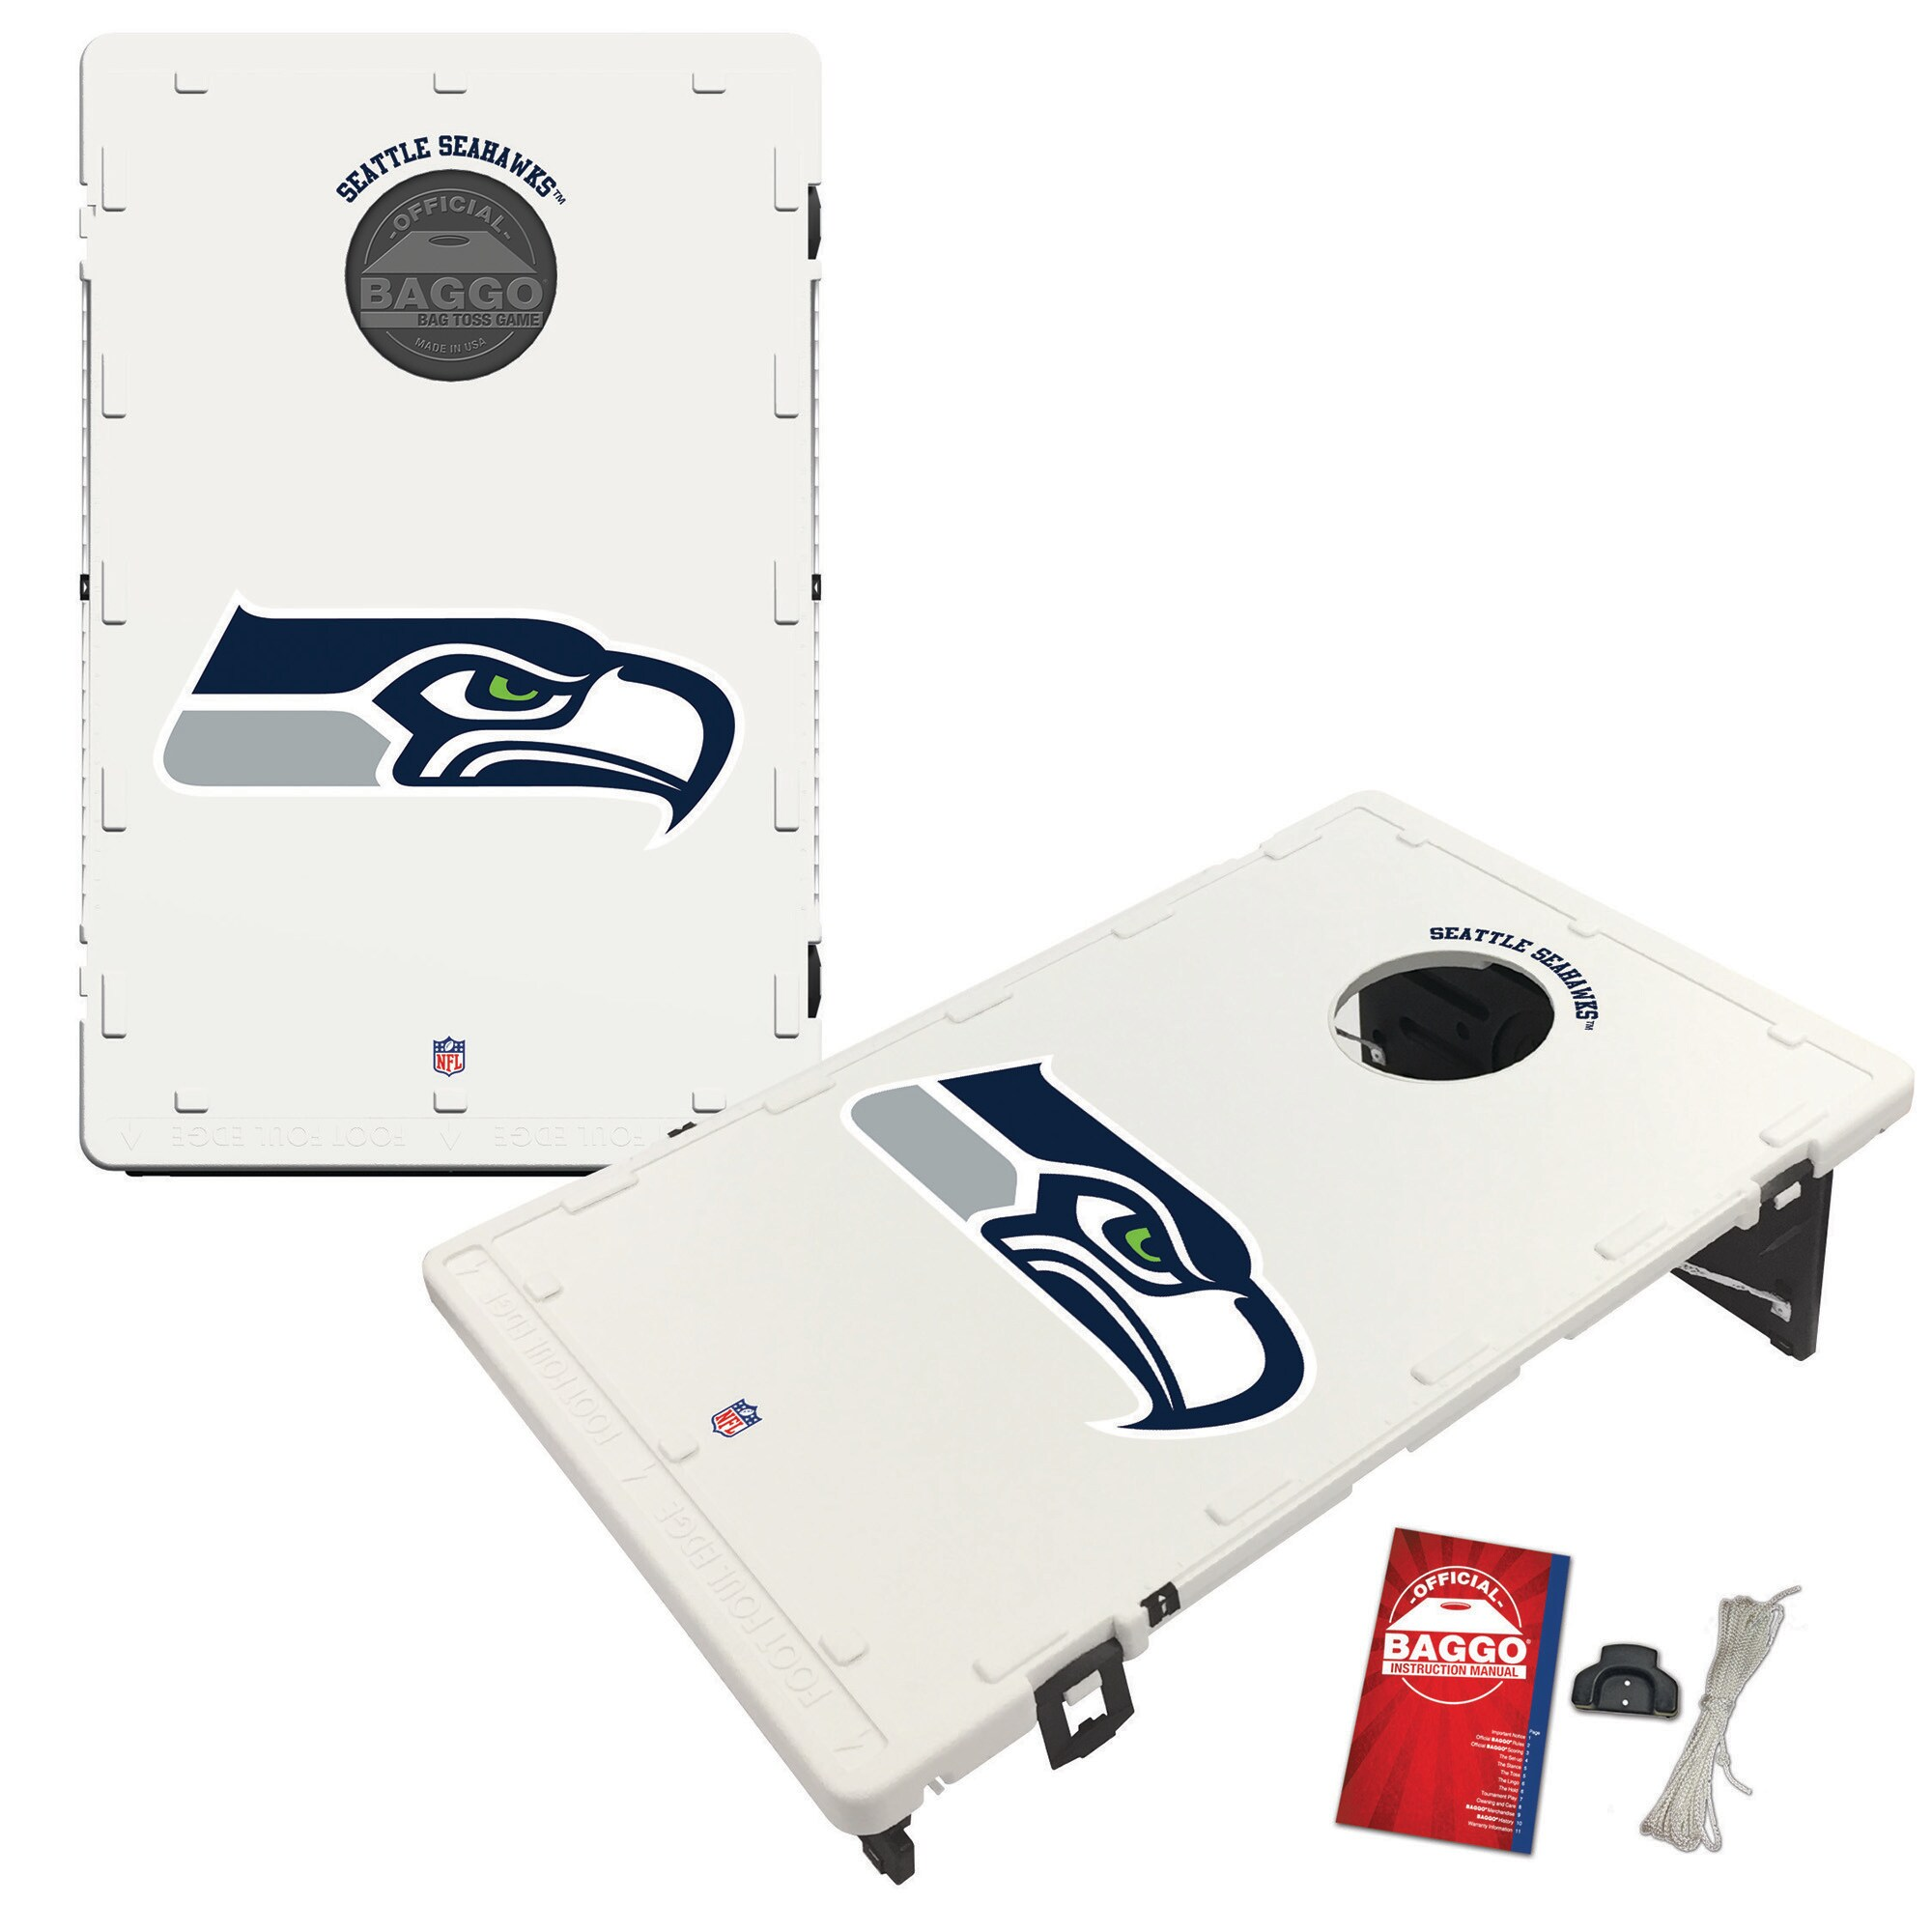 Seattle Seahawks 2' x 3' Classic Design BAGGO Cornhole Board Tailgate Toss Set